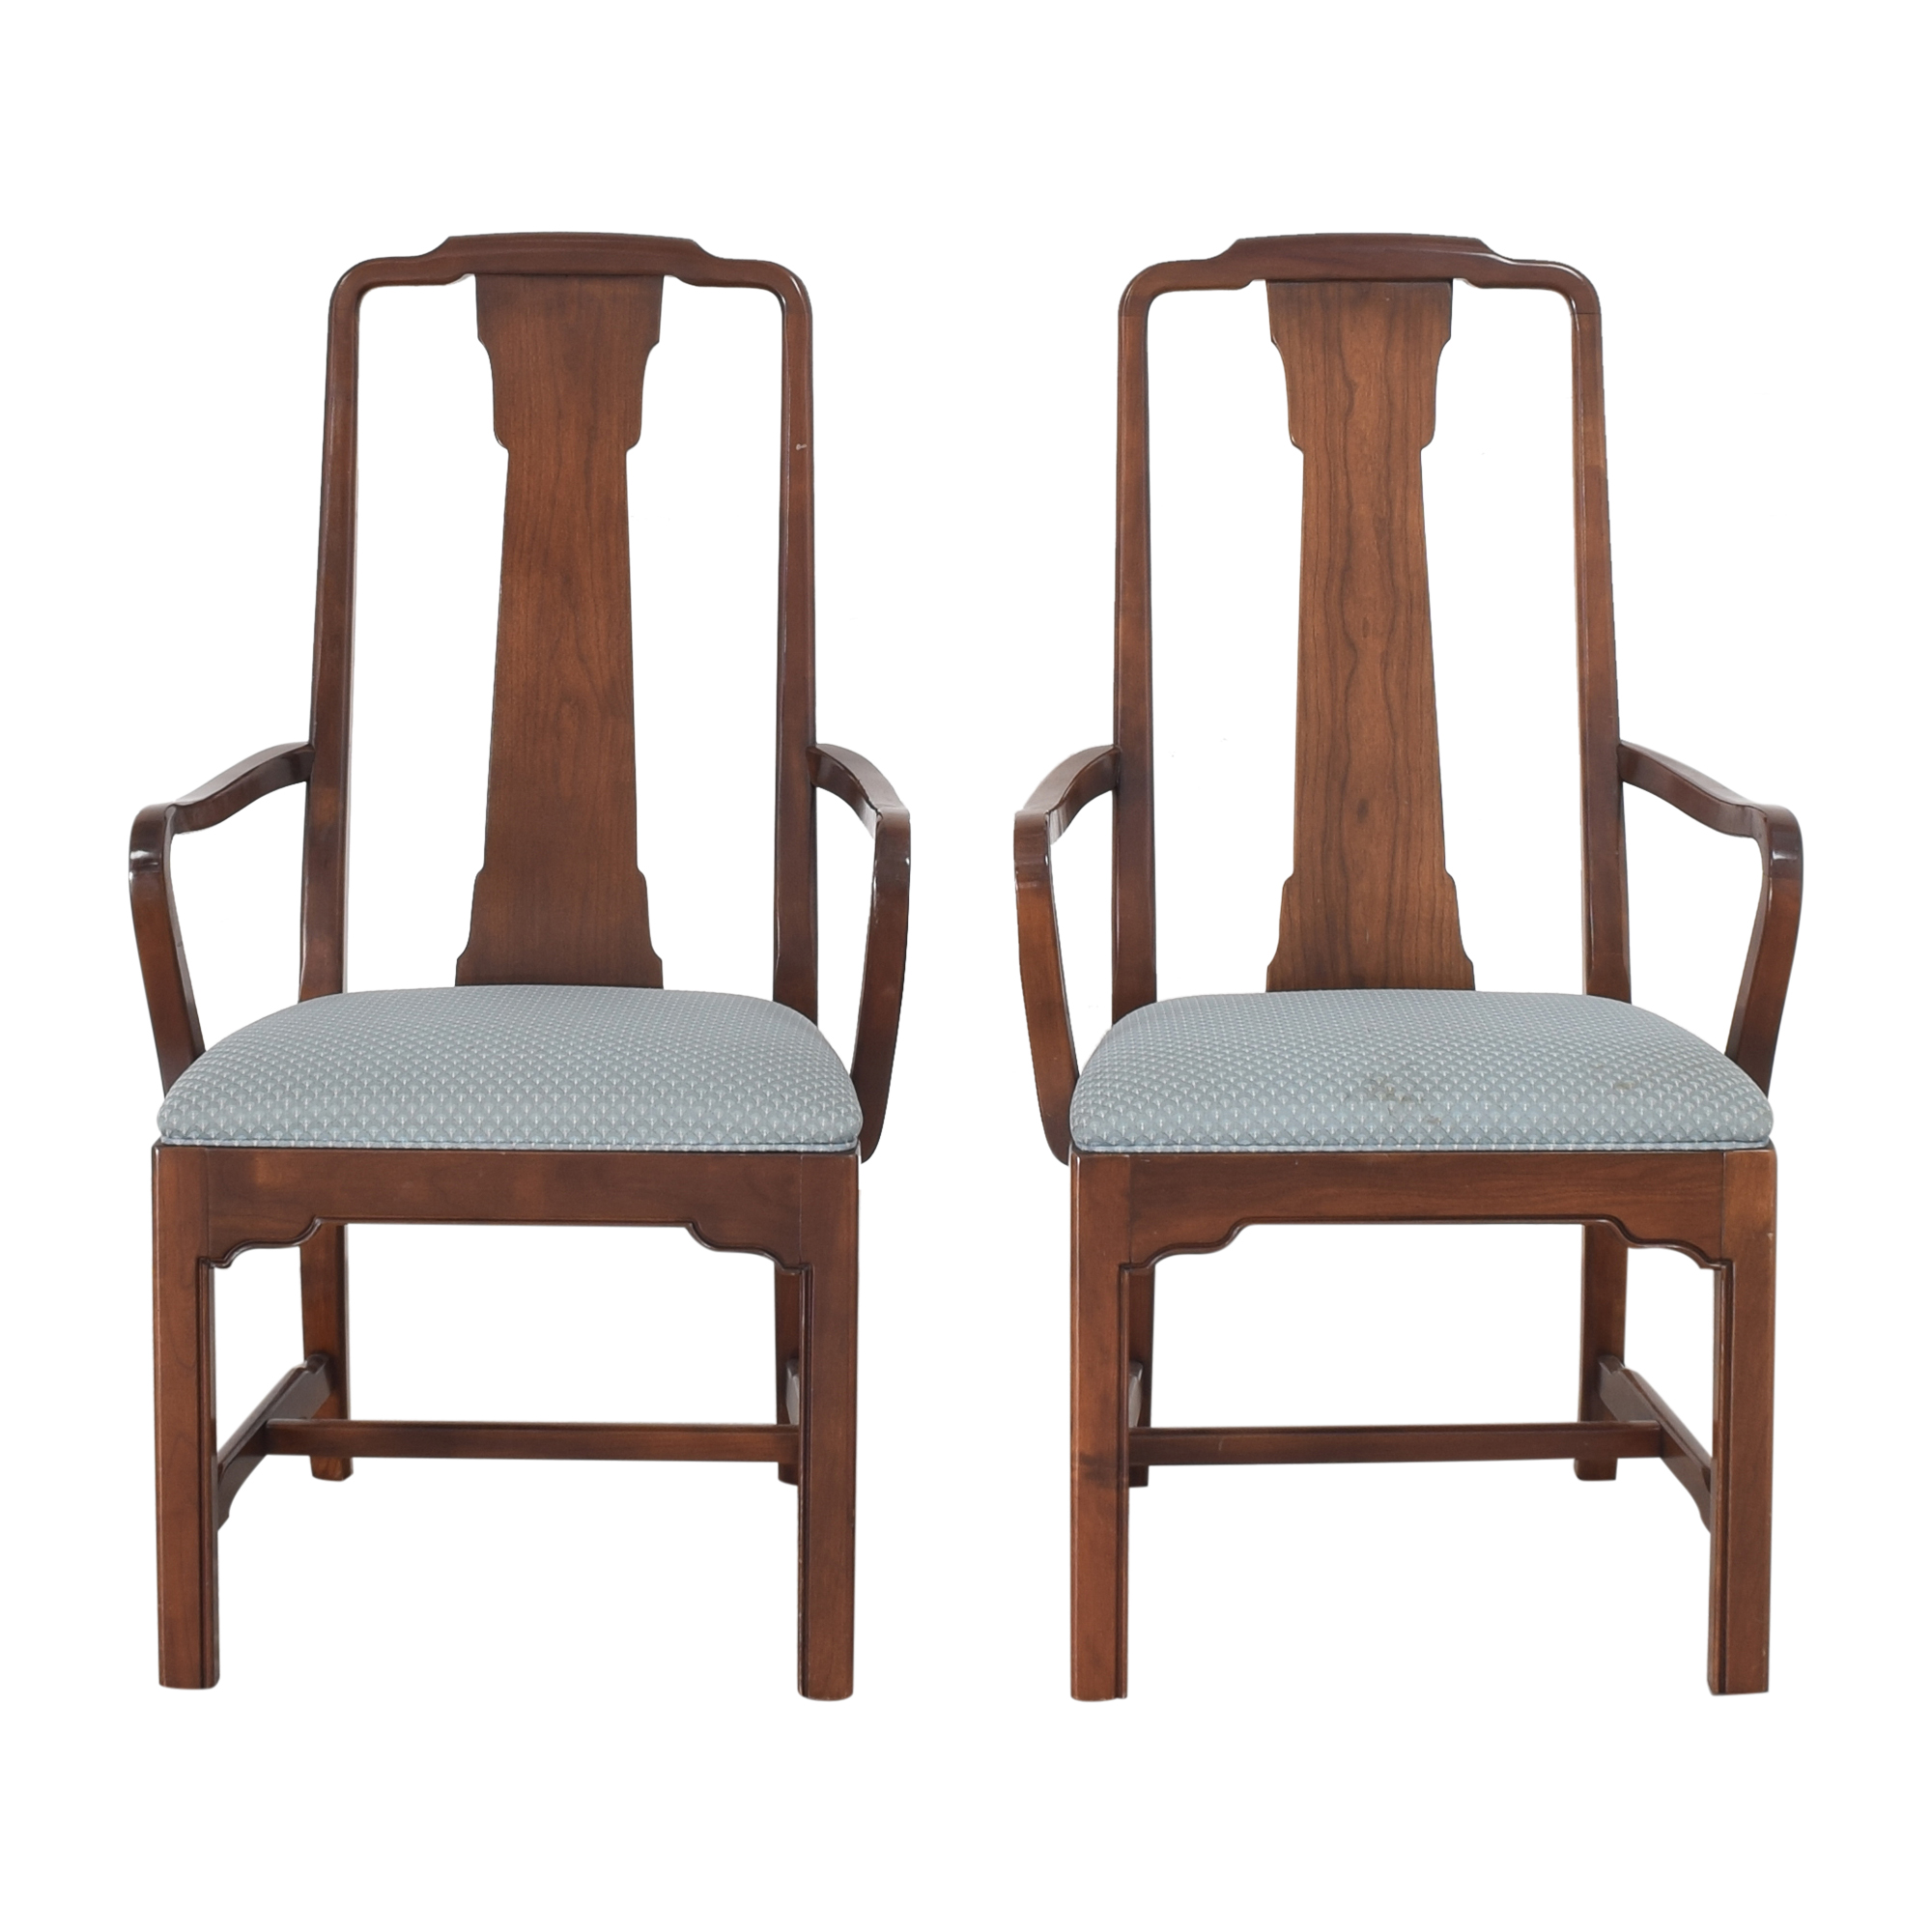 Ethan Allen Ethan Allen Canova Campaign Dining Arm Chairs ma